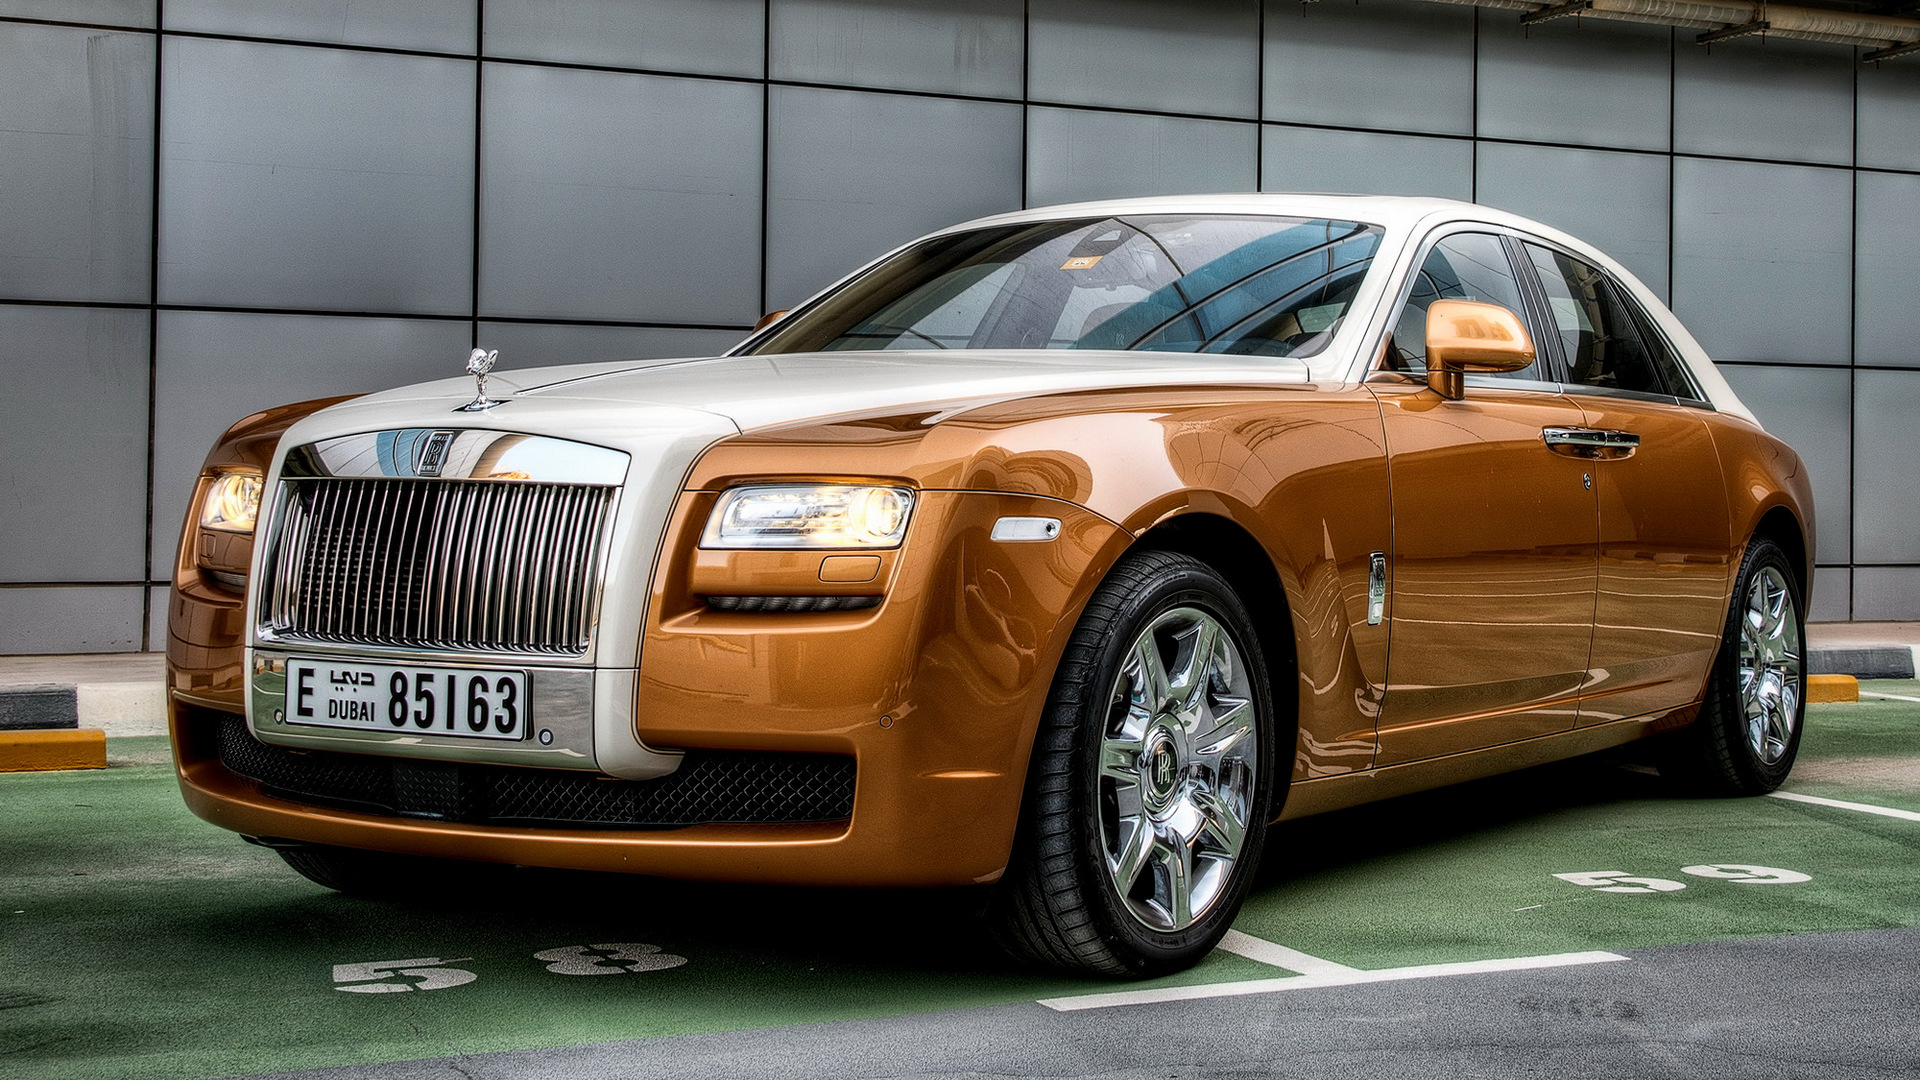 rolls-royce ghost (2009) wallpapers and hd images - car pixel